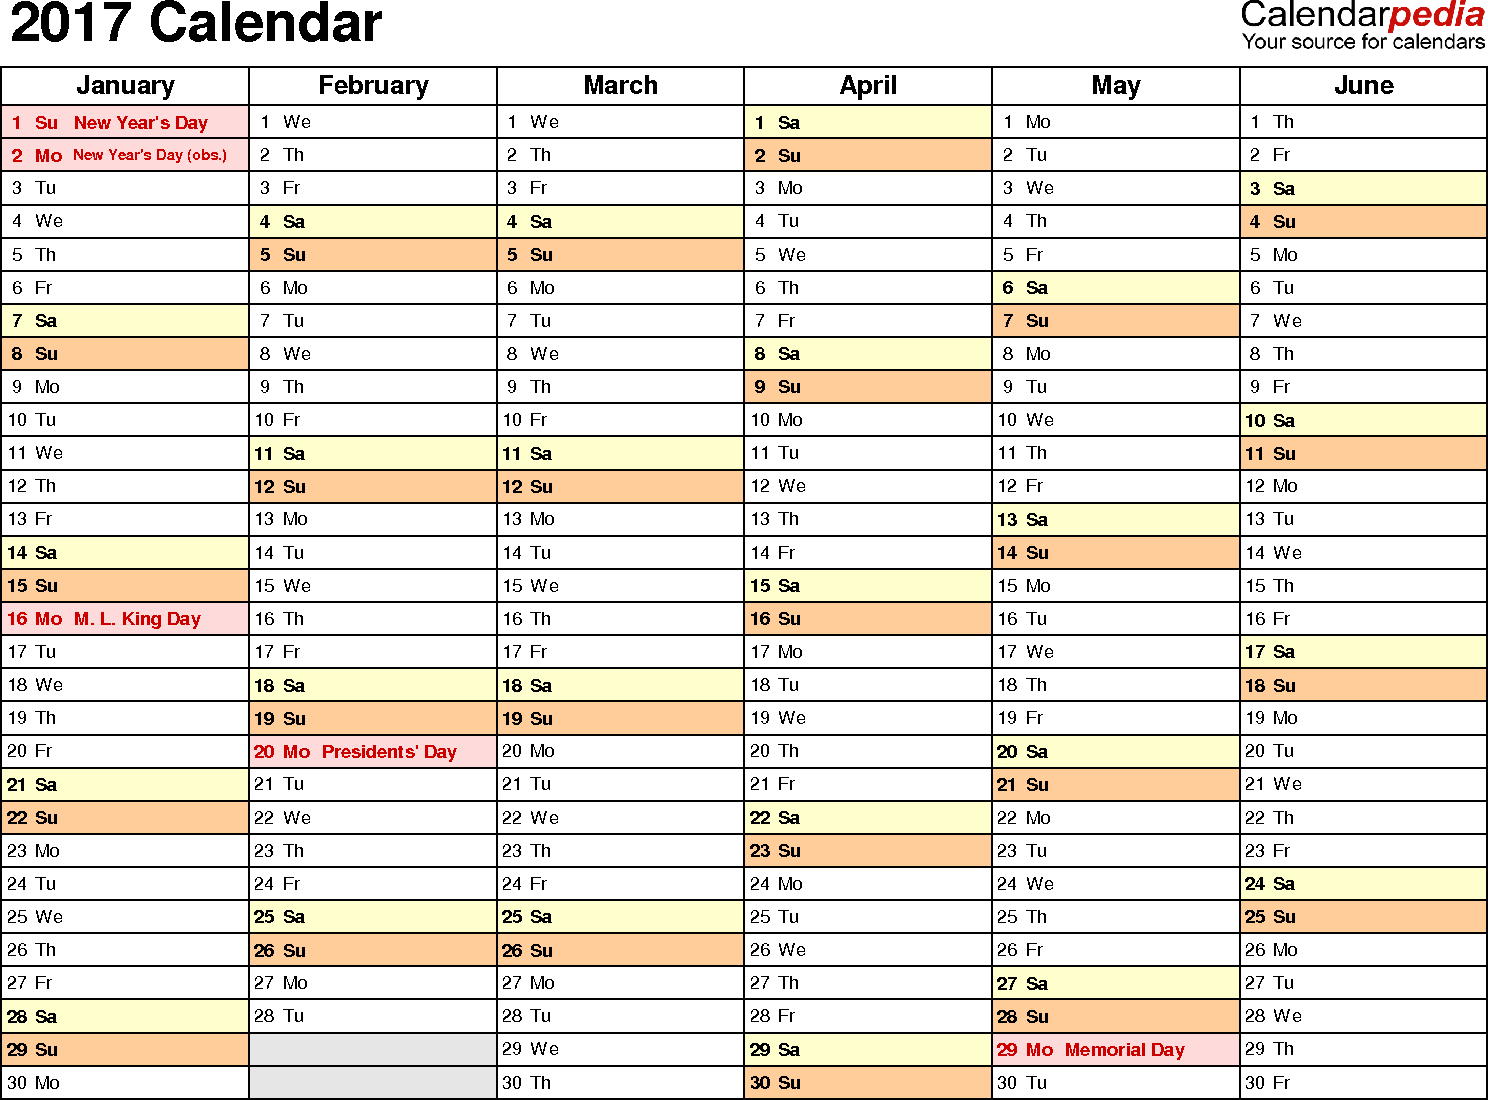 Ediblewildsus  Pleasant  Calendar  Download  Free Printable Excel Templates Xls With Hot Template   Calendar For Excel Months Horizontally  Pages Landscape Orientation With Delightful Excel Formula For Finding Duplicates Also Excel Sensor Razor In Addition Microsoft Excel Error And Product Sum Excel As Well As Excel Experienced A Serious Problem With The Addin Additionally Excel Database Examples From Calendarpediacom With Ediblewildsus  Hot  Calendar  Download  Free Printable Excel Templates Xls With Delightful Template   Calendar For Excel Months Horizontally  Pages Landscape Orientation And Pleasant Excel Formula For Finding Duplicates Also Excel Sensor Razor In Addition Microsoft Excel Error From Calendarpediacom